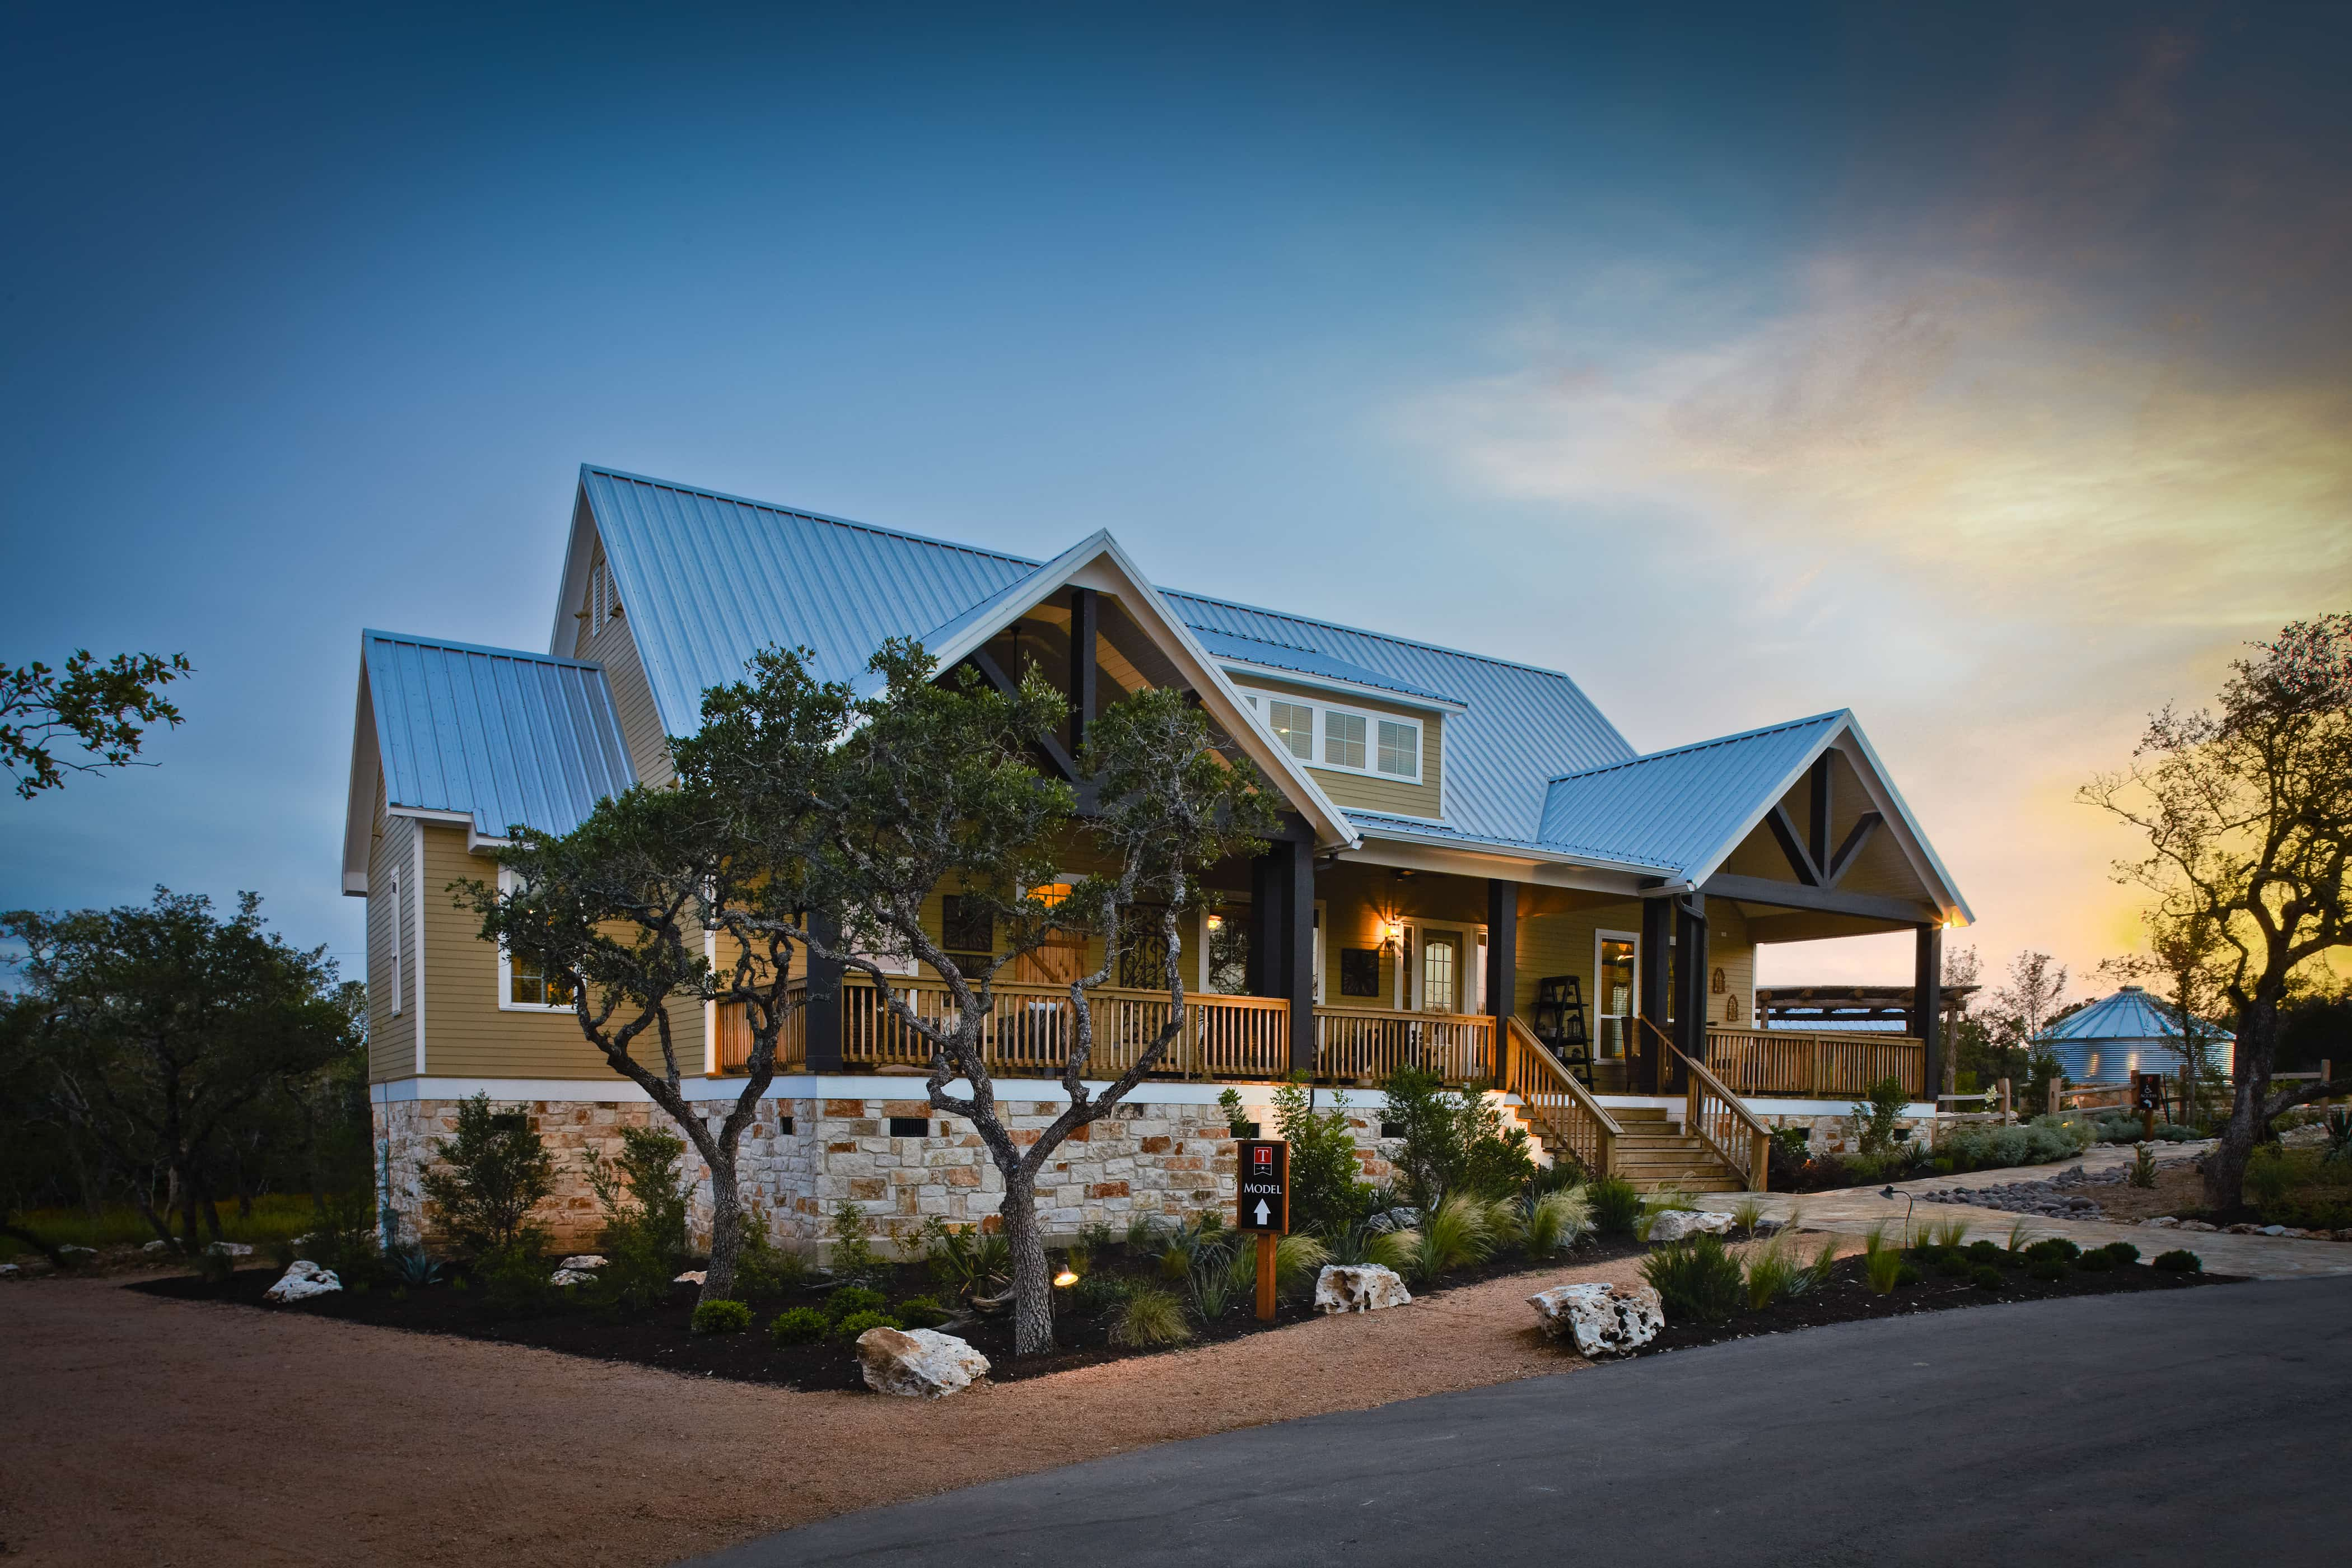 Model Home Park Gallery Texas Casual Cottages